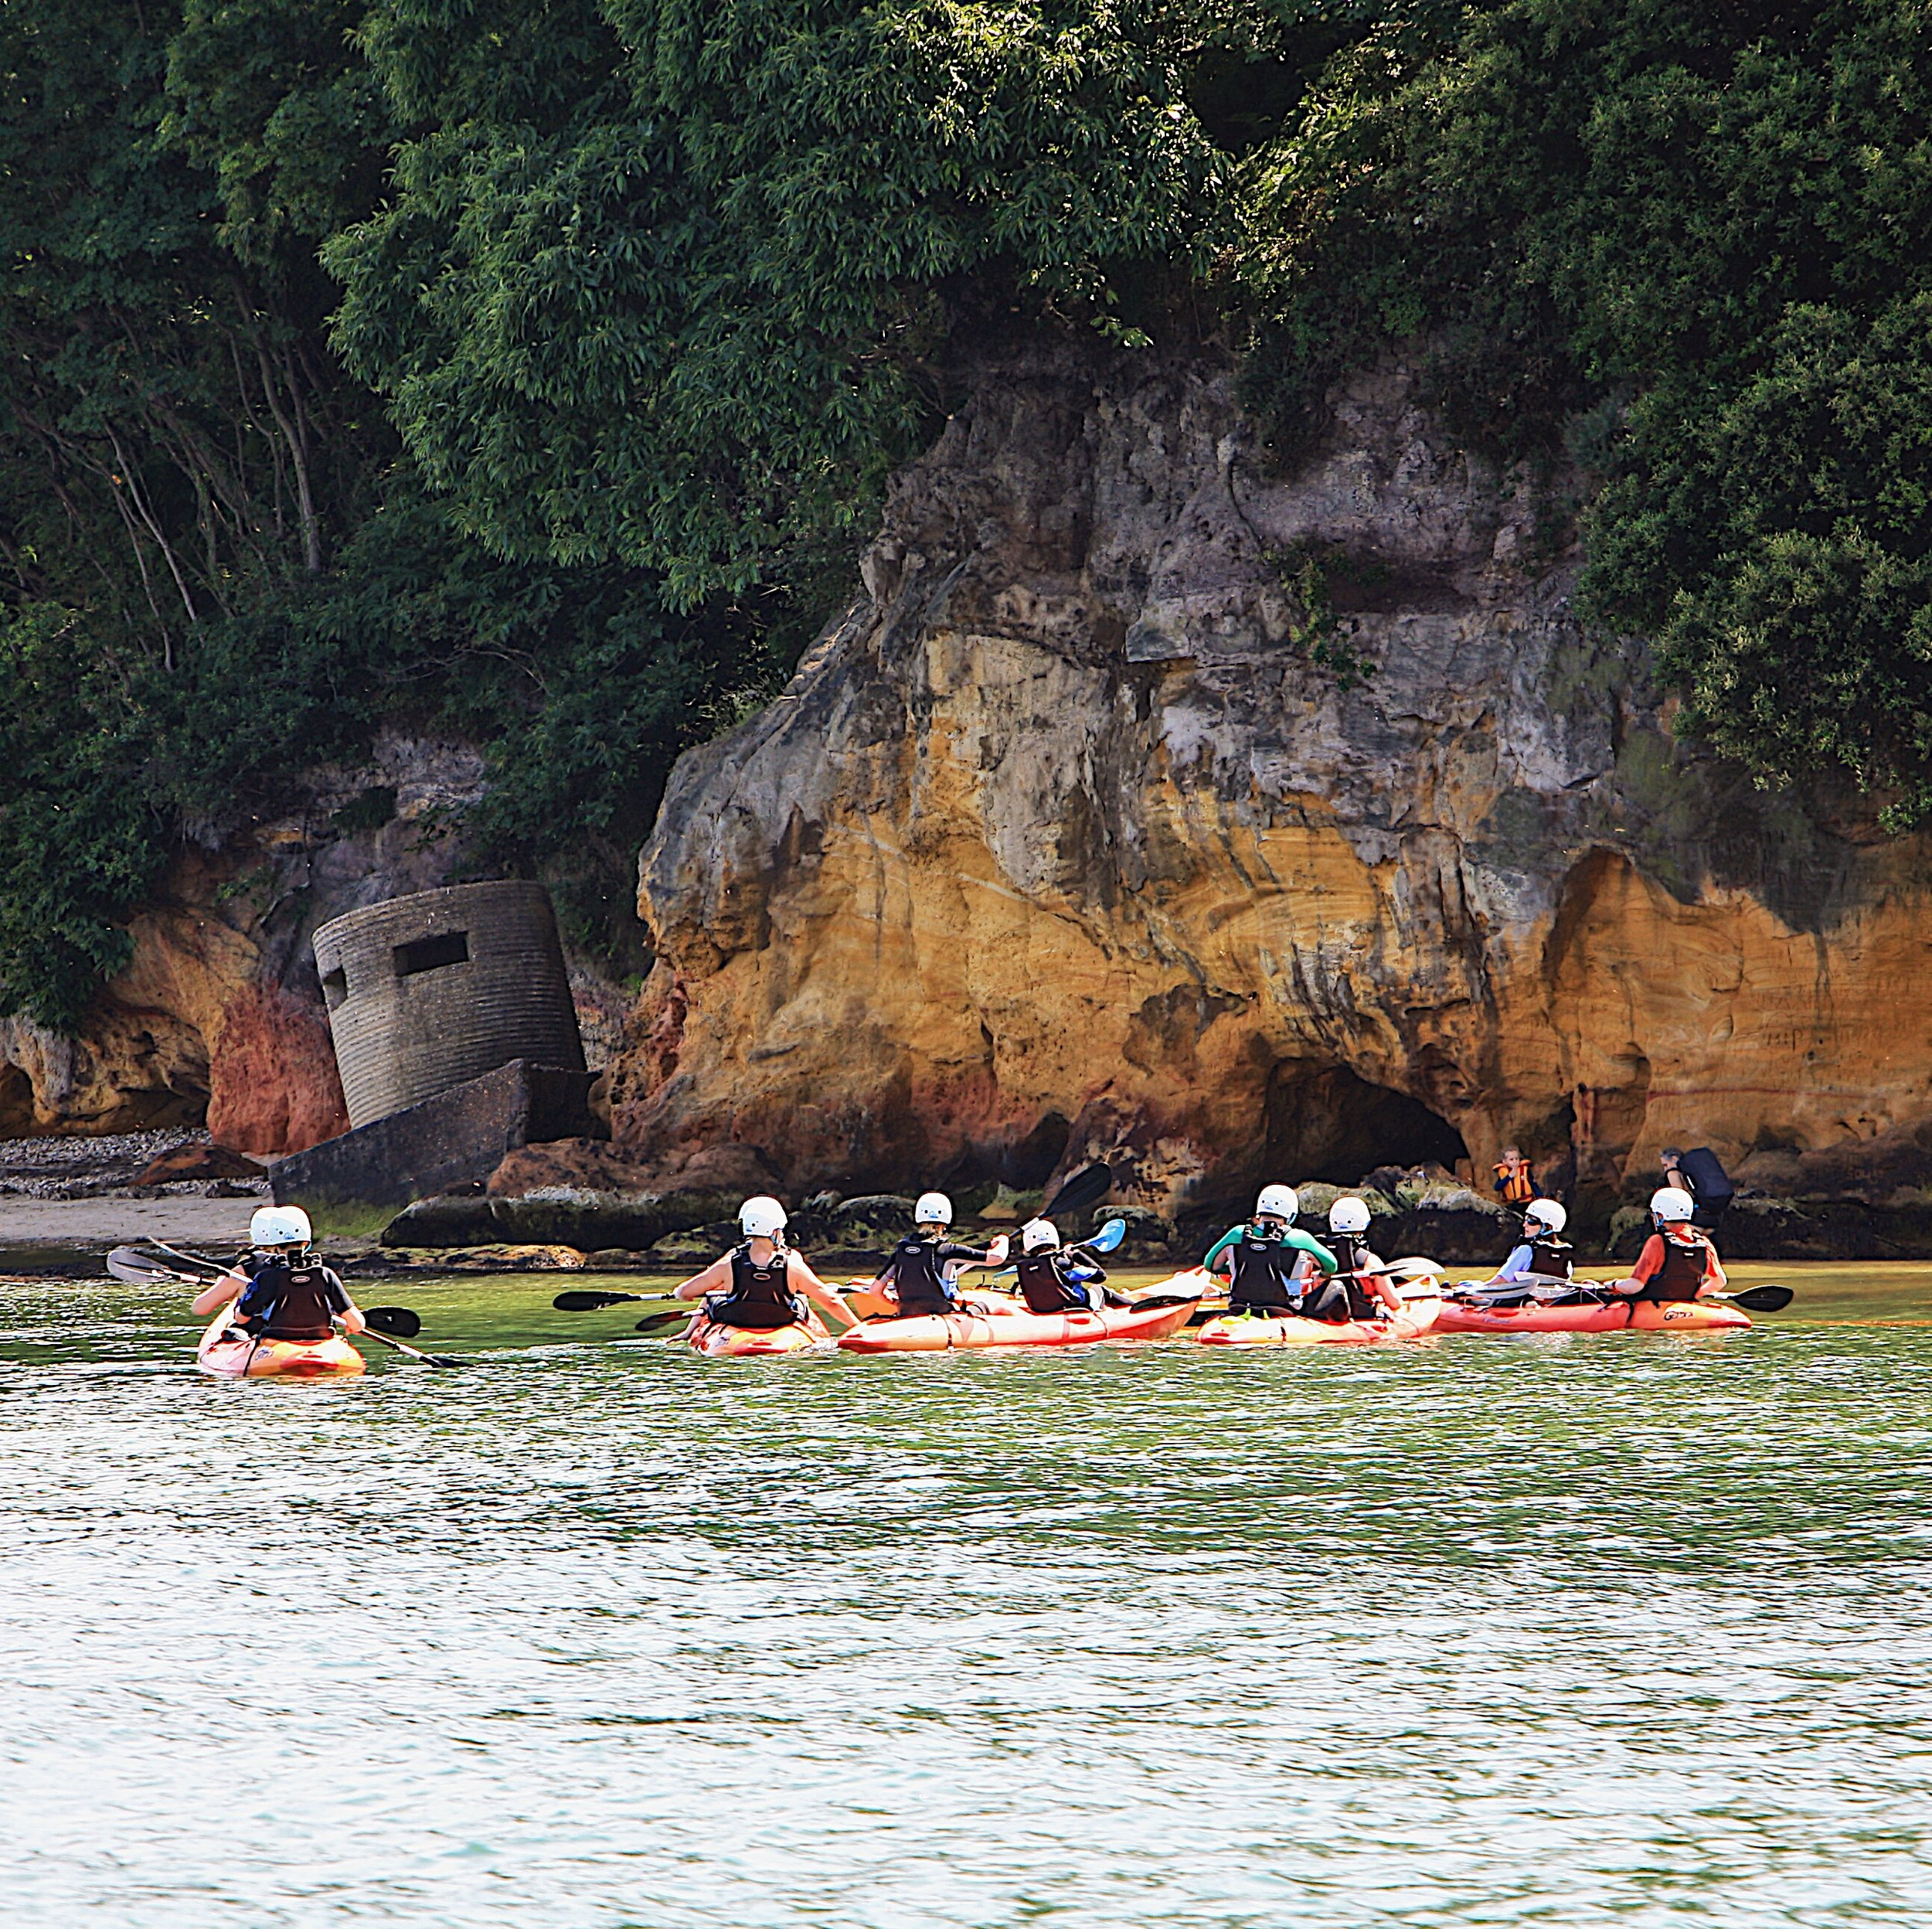 kayaking tours in dorset with foreadventure